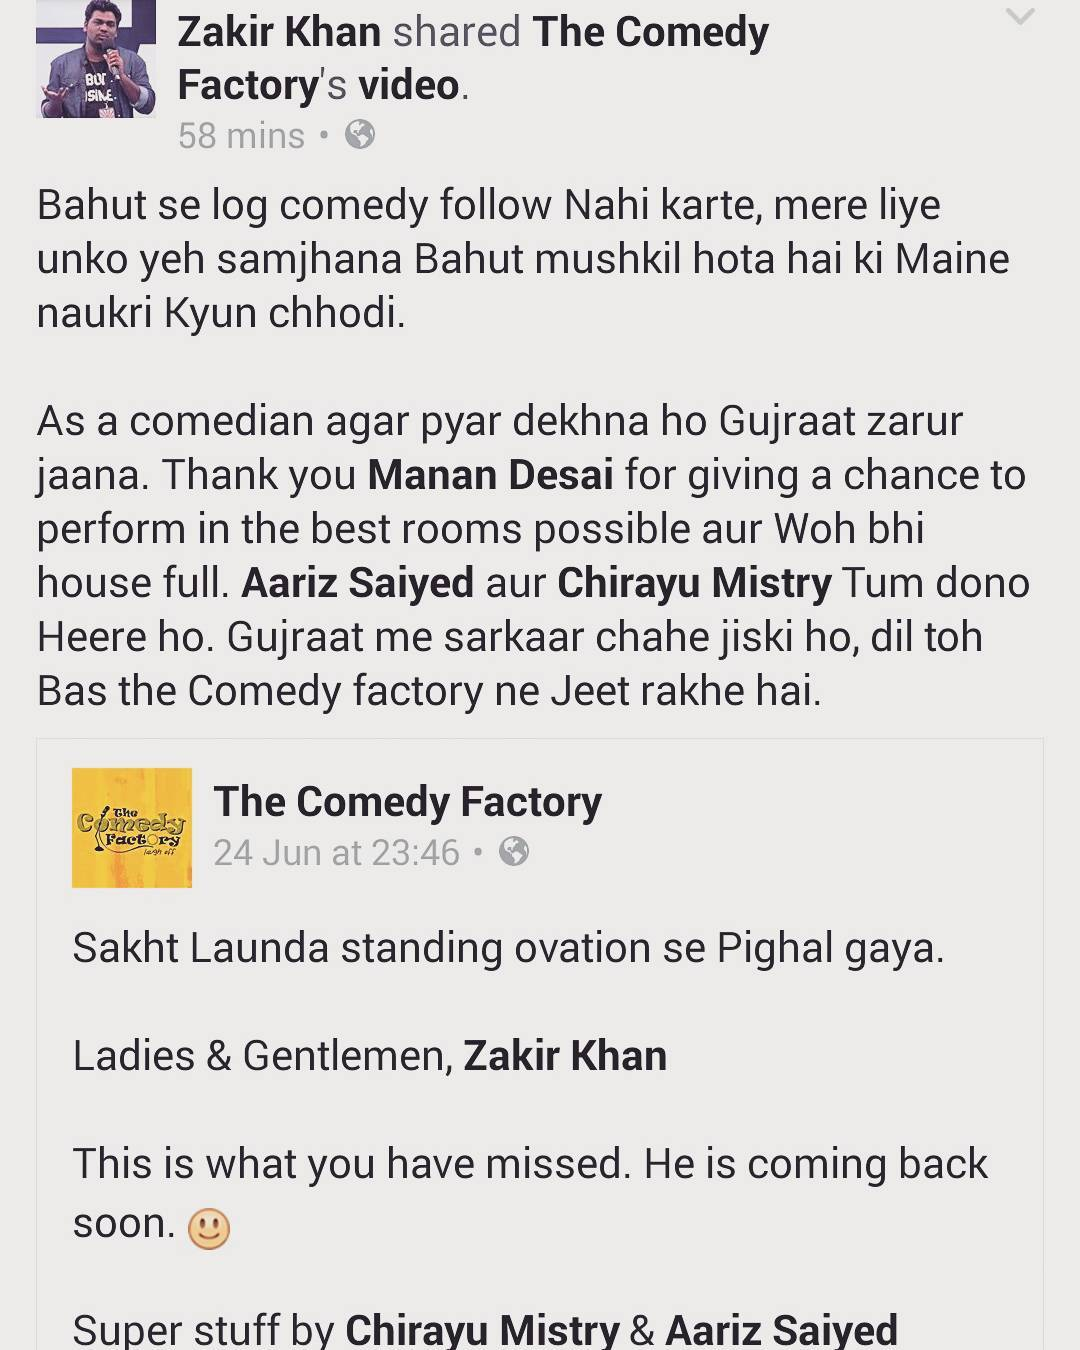 Such words of love encourages us to do more shows for our audience and more comedians from all over the world. Thank you @zakirkhan_208 for one of the best shows we have had so far. More to come at @thecomedyfactoryindia  #SakhtLaunda #Moment #thecomedyfactory